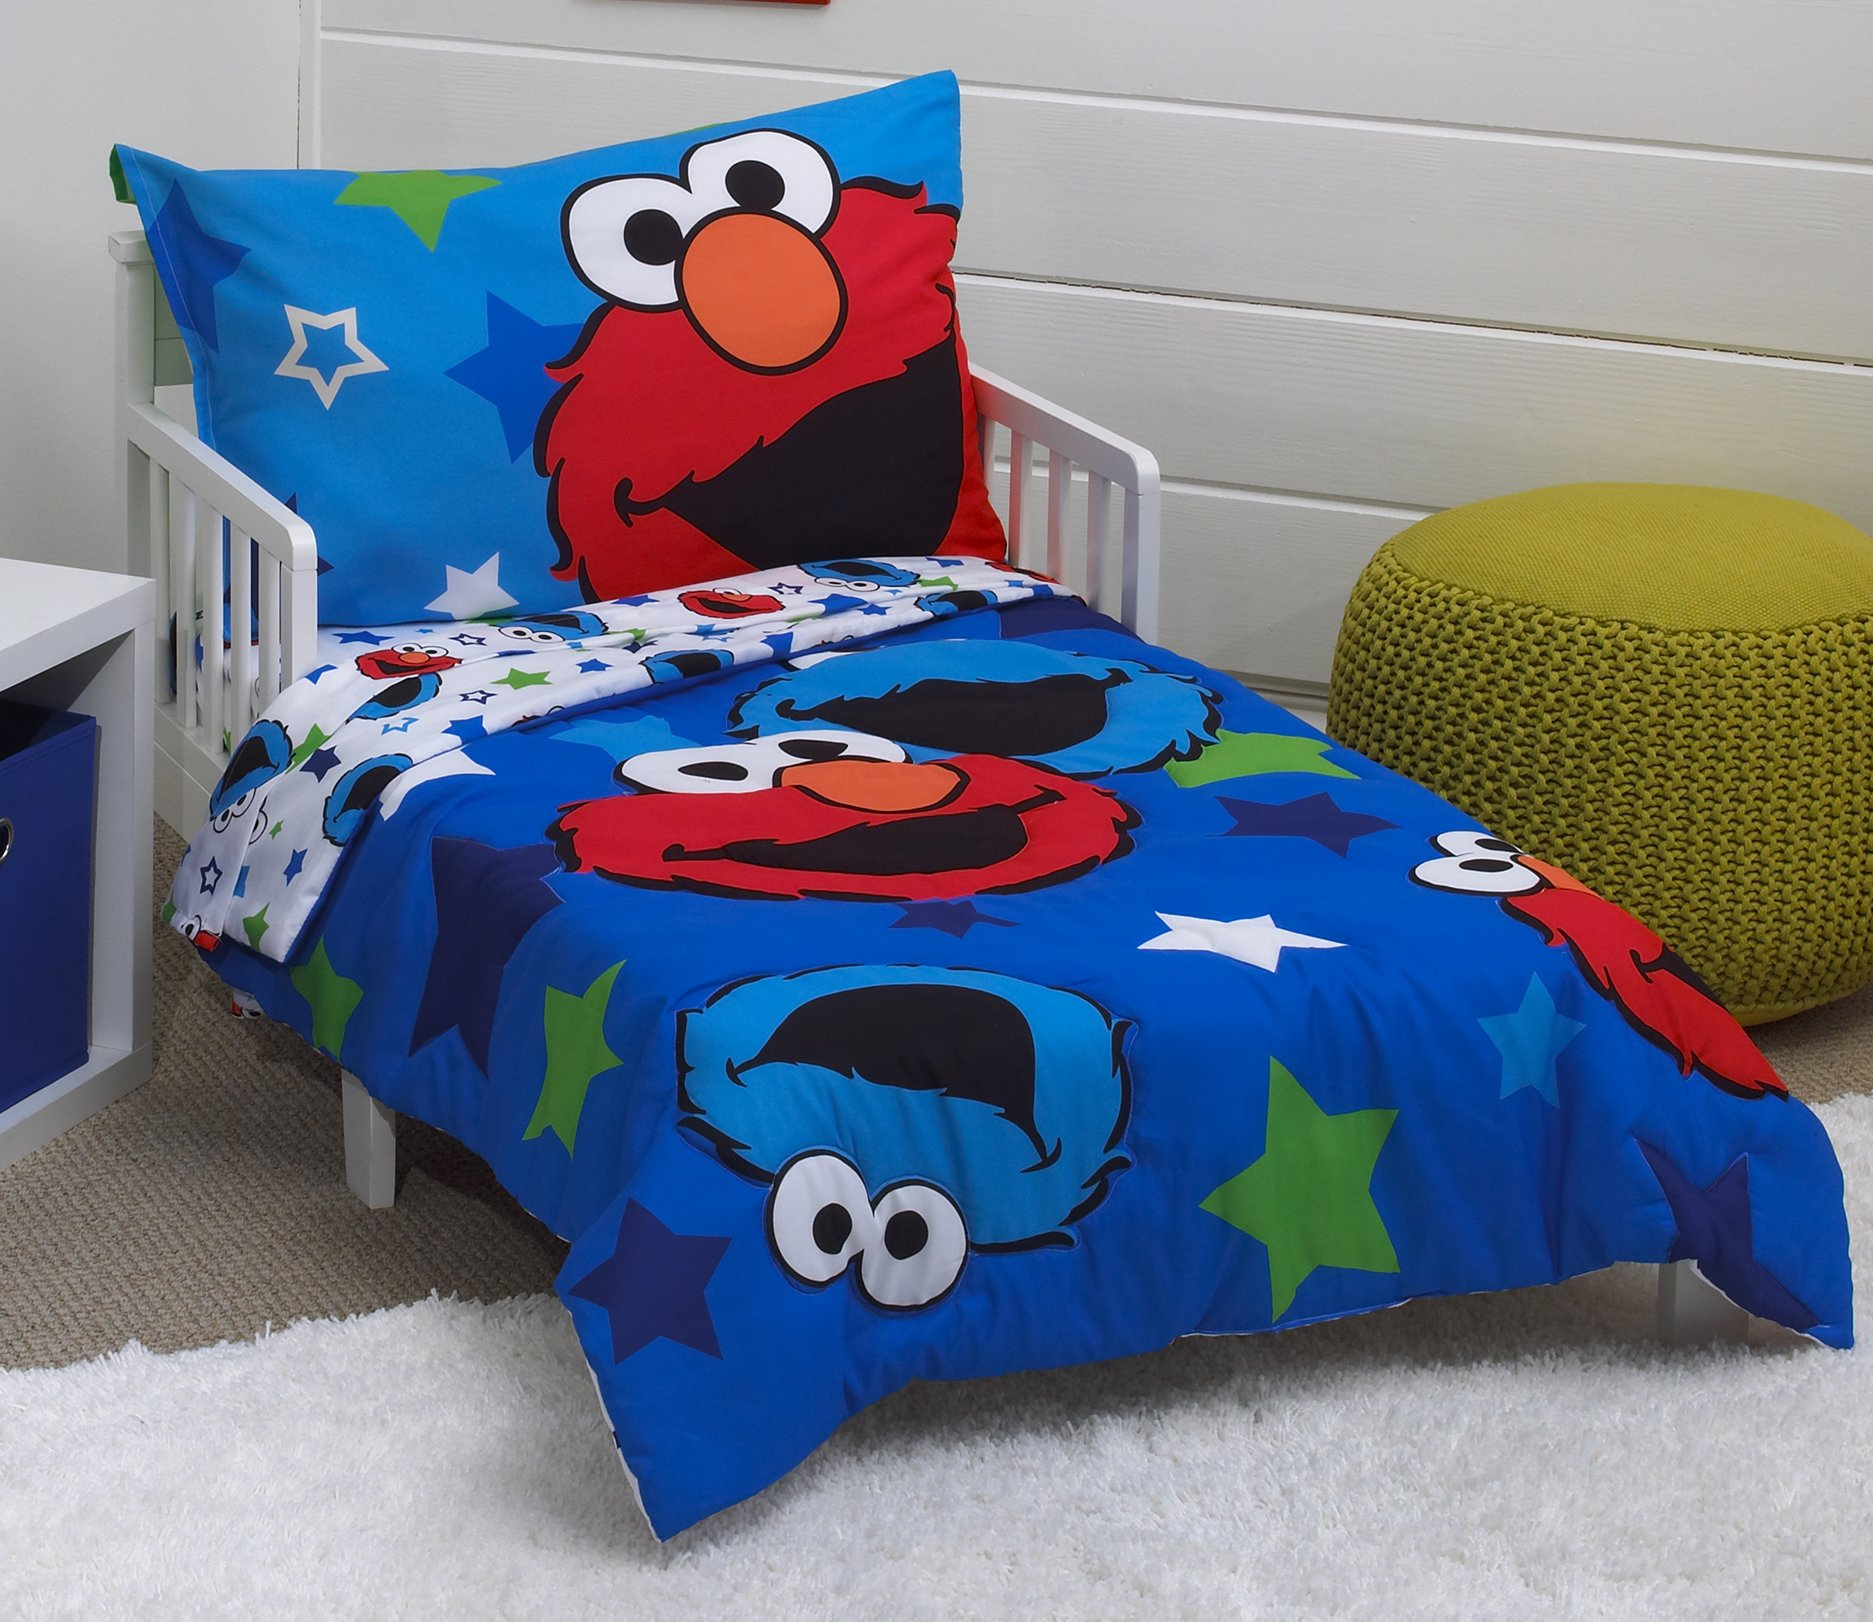 Sesame Street Awesome Buds Elmo/Cookie Monster 4 Piece Toddler Bed Set, Blue/Red/Green by Sesame Street